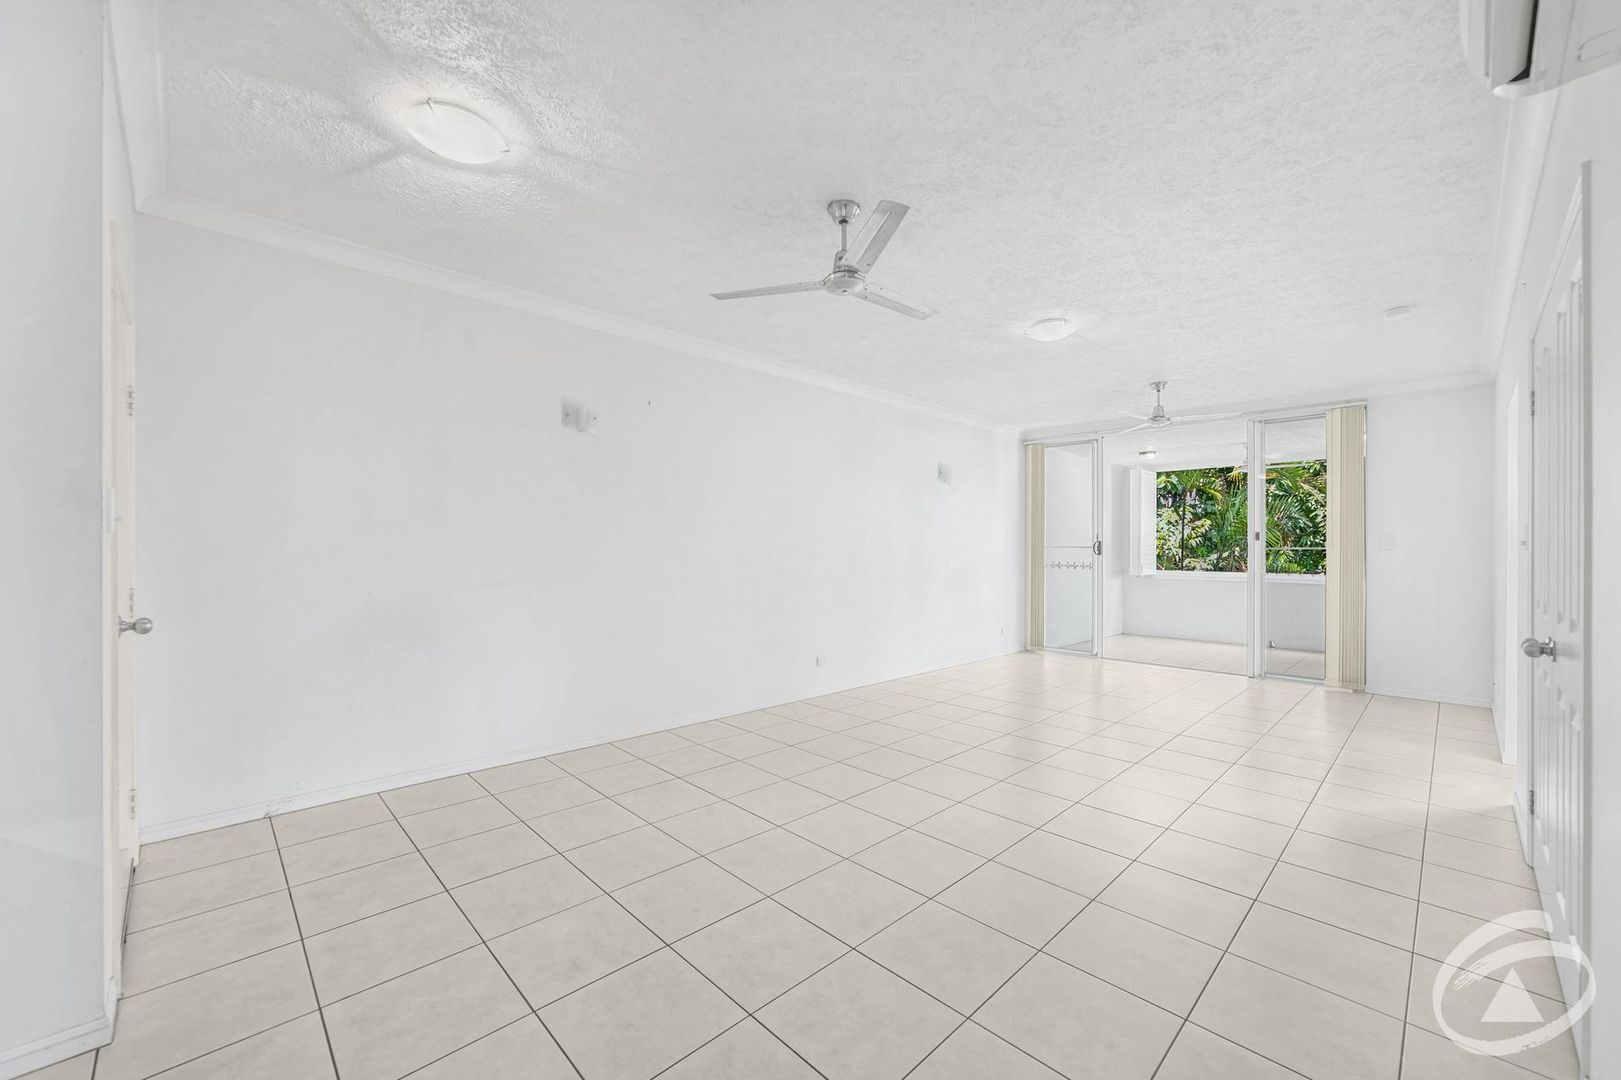 19/164-172 Spence Street, Bungalow QLD 4870, Image 2